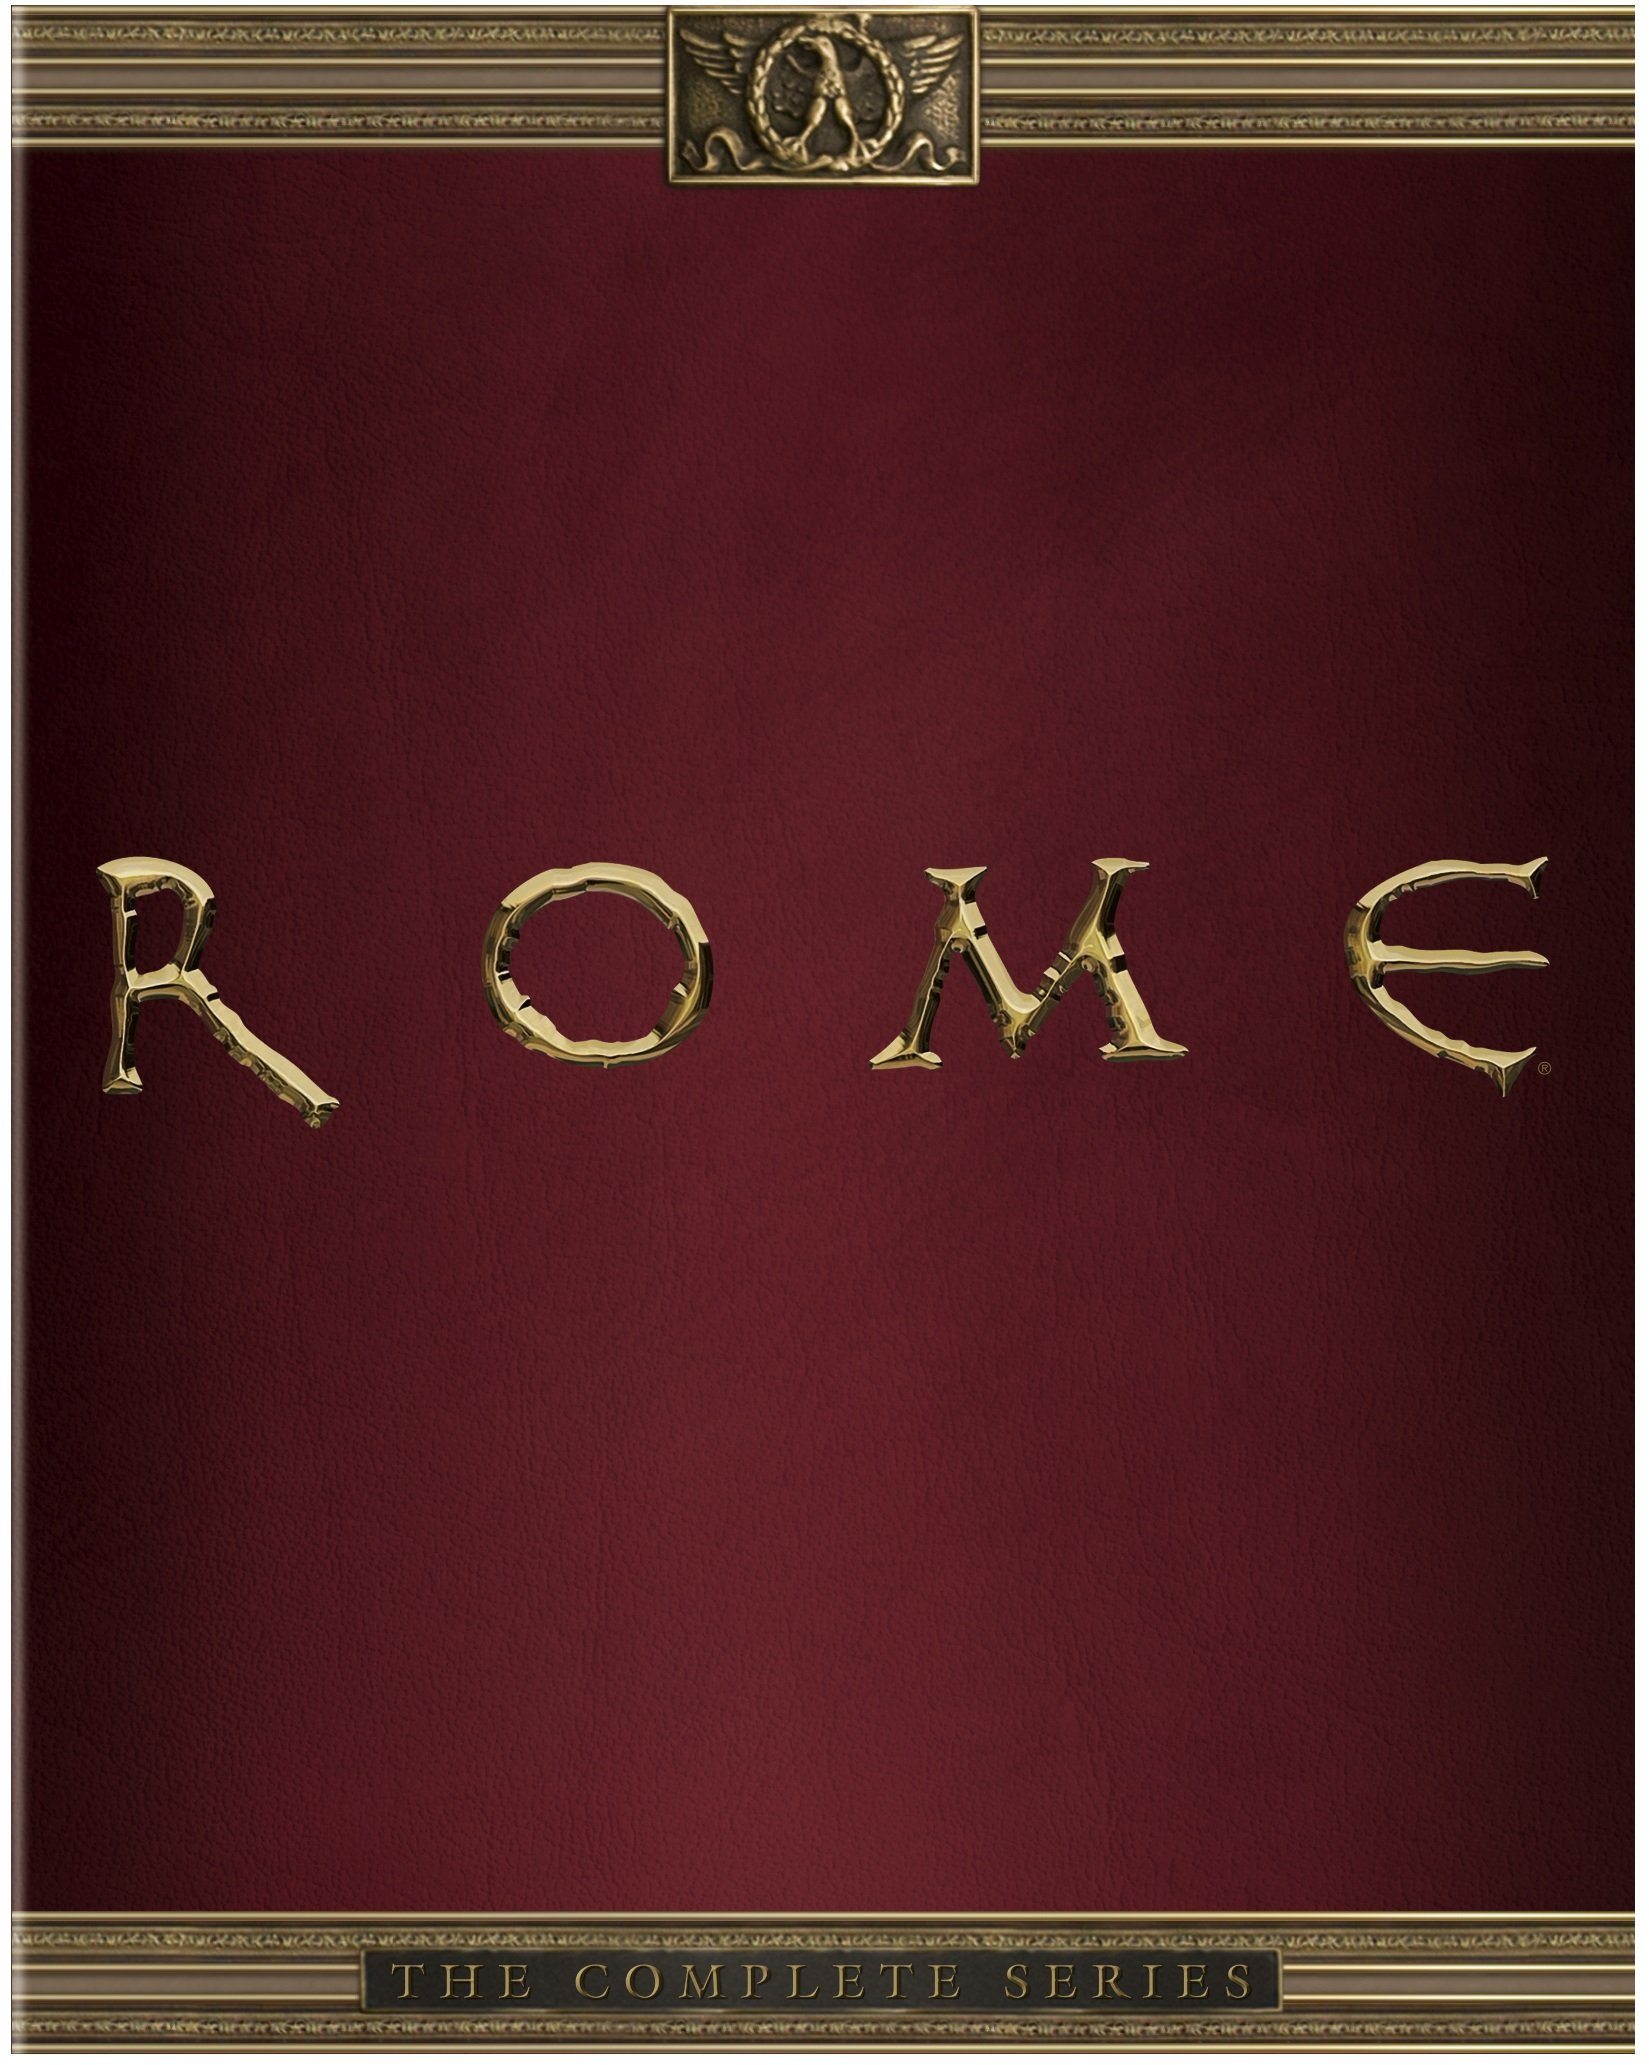 Rome: The Complete Series